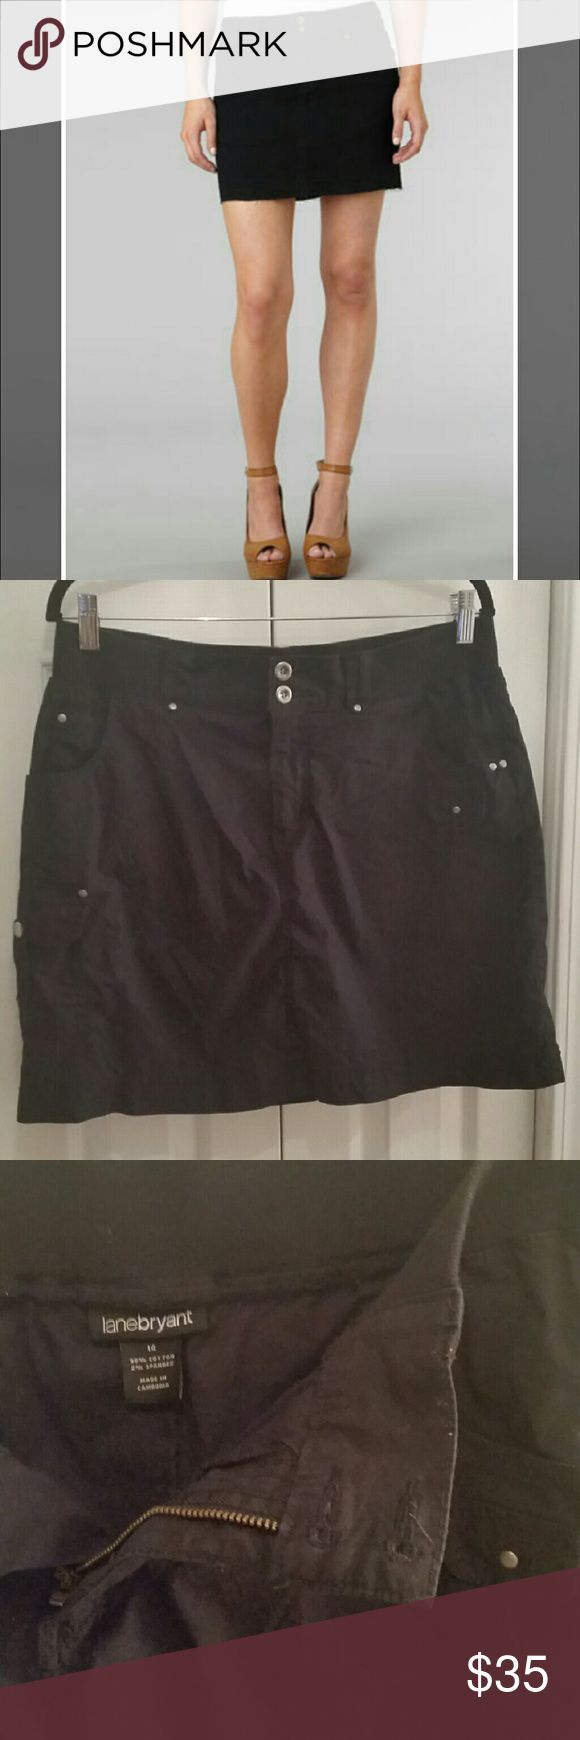 Lane Bryant Skort Black cargo skort from Lane Bryant New Without Tags This is a skort, a cross between skirt and short Lots if pockets, including side cargo pocket  18 inches long 98% cotton  2% spandex  Land Bryants size 14 Elastic waist with button zipper front fly  Look smashing and trendy, skorts are wonderful, cool and trendy yet offer modesty when bike riding, gulfing, hiking, tennis or just bending over. Lane Bryant Skirts